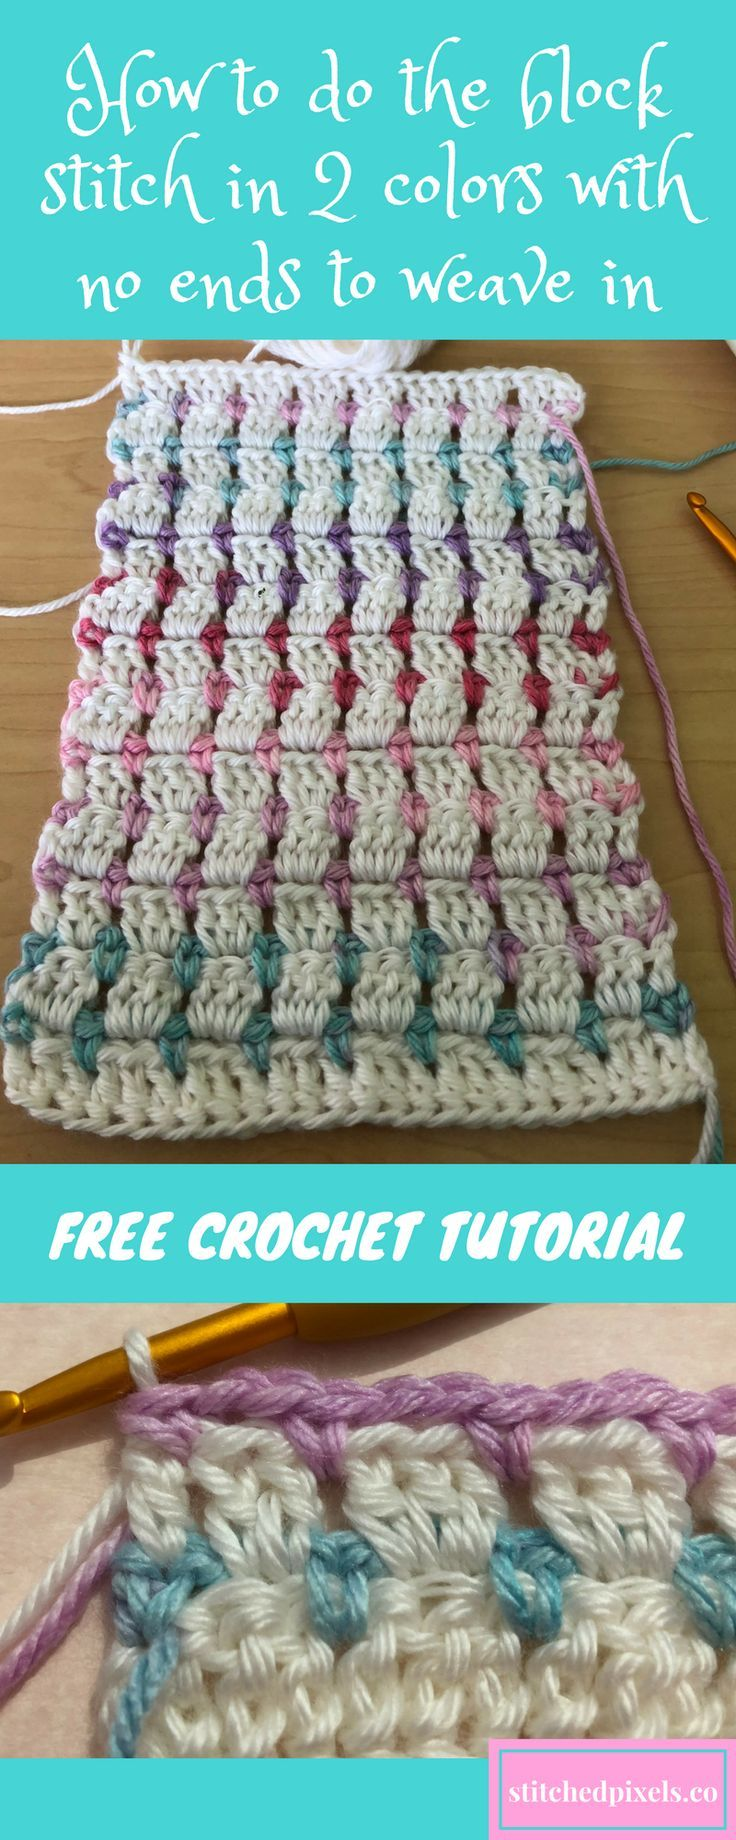 Tired of weaving in ends?  Try this new free crochet tutorial on how to do the block stitch in 2 colors, with no ends to weave in (except at the start and end).